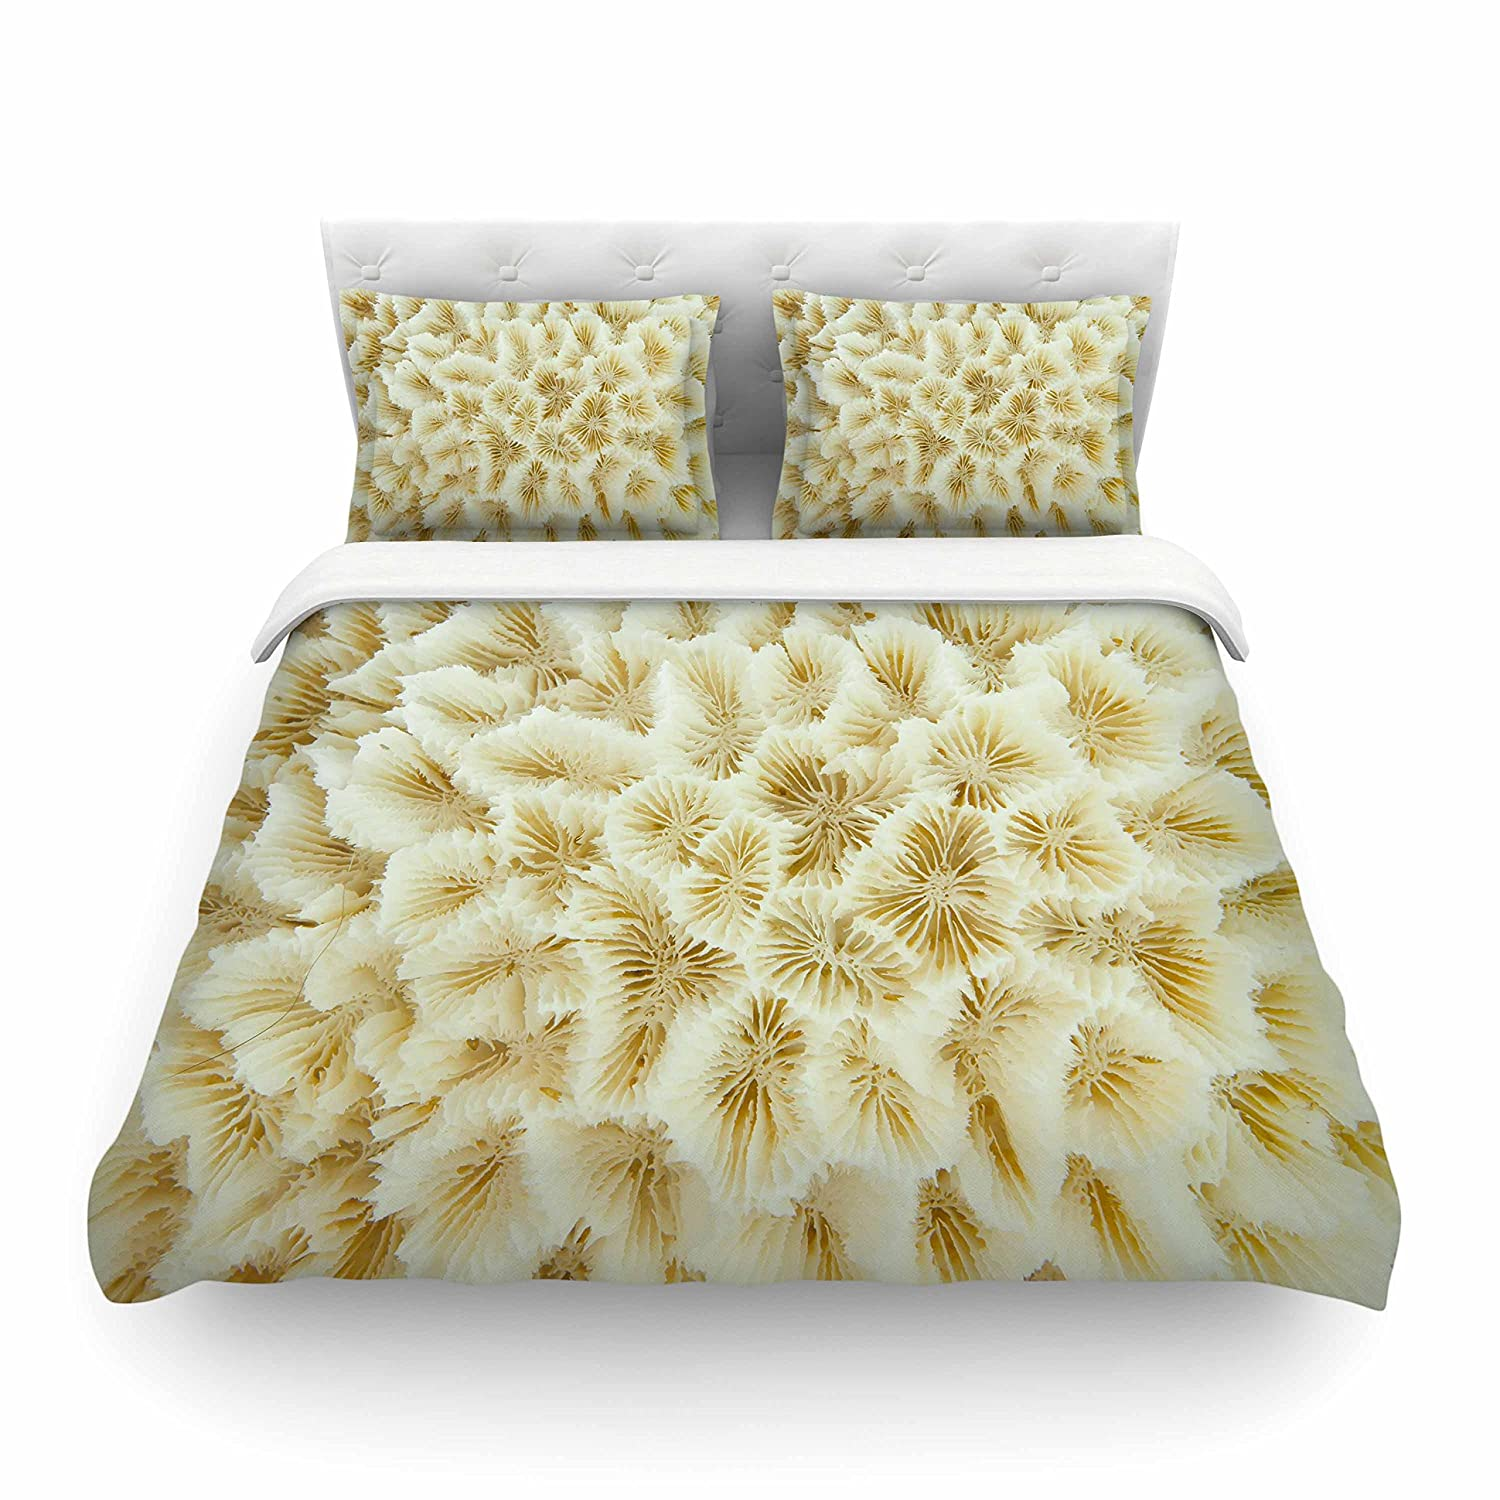 Kess InHouse Susan Sanders Ivory Ocean Beach Coral Beige White Photography King Featherweight Duvet Cover 104 x 88